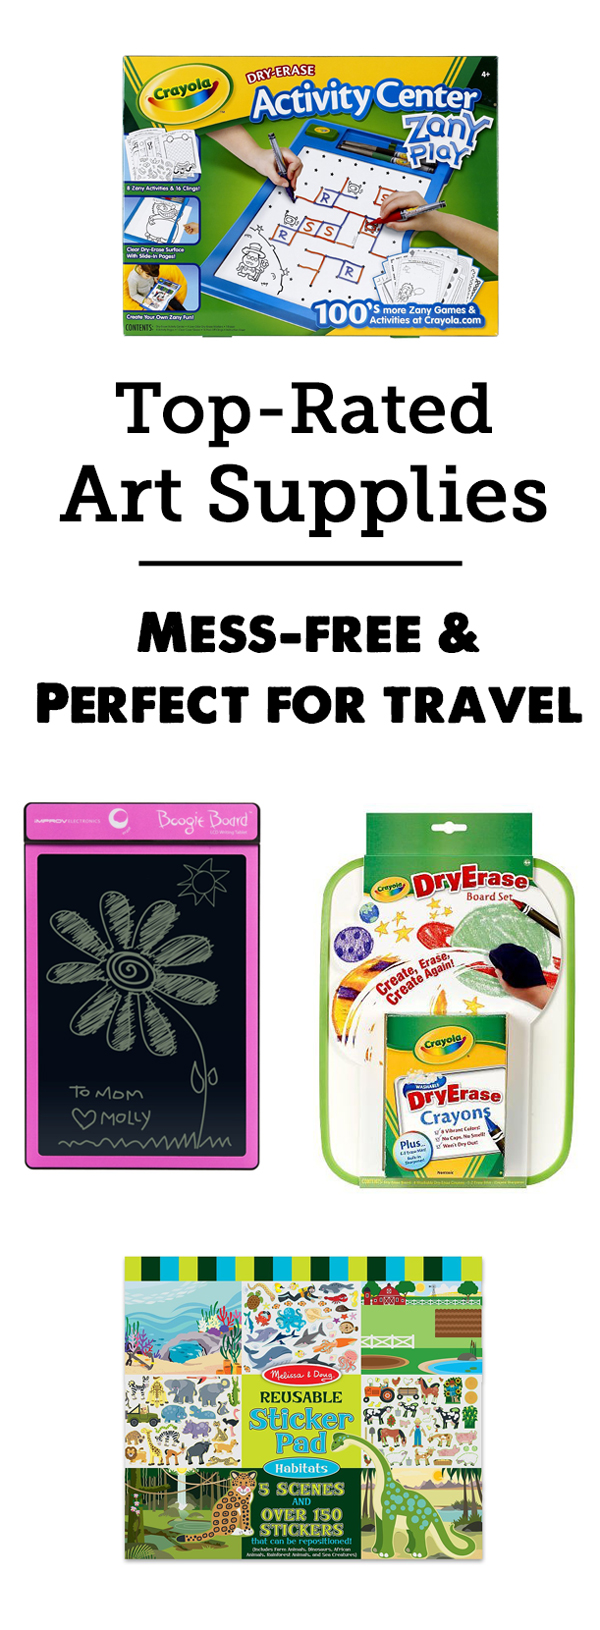 Best Travel Art Supplies and Mess-free Art for Kids - So many cool and interesting picks here, love the age recommendations and detailed reviews.